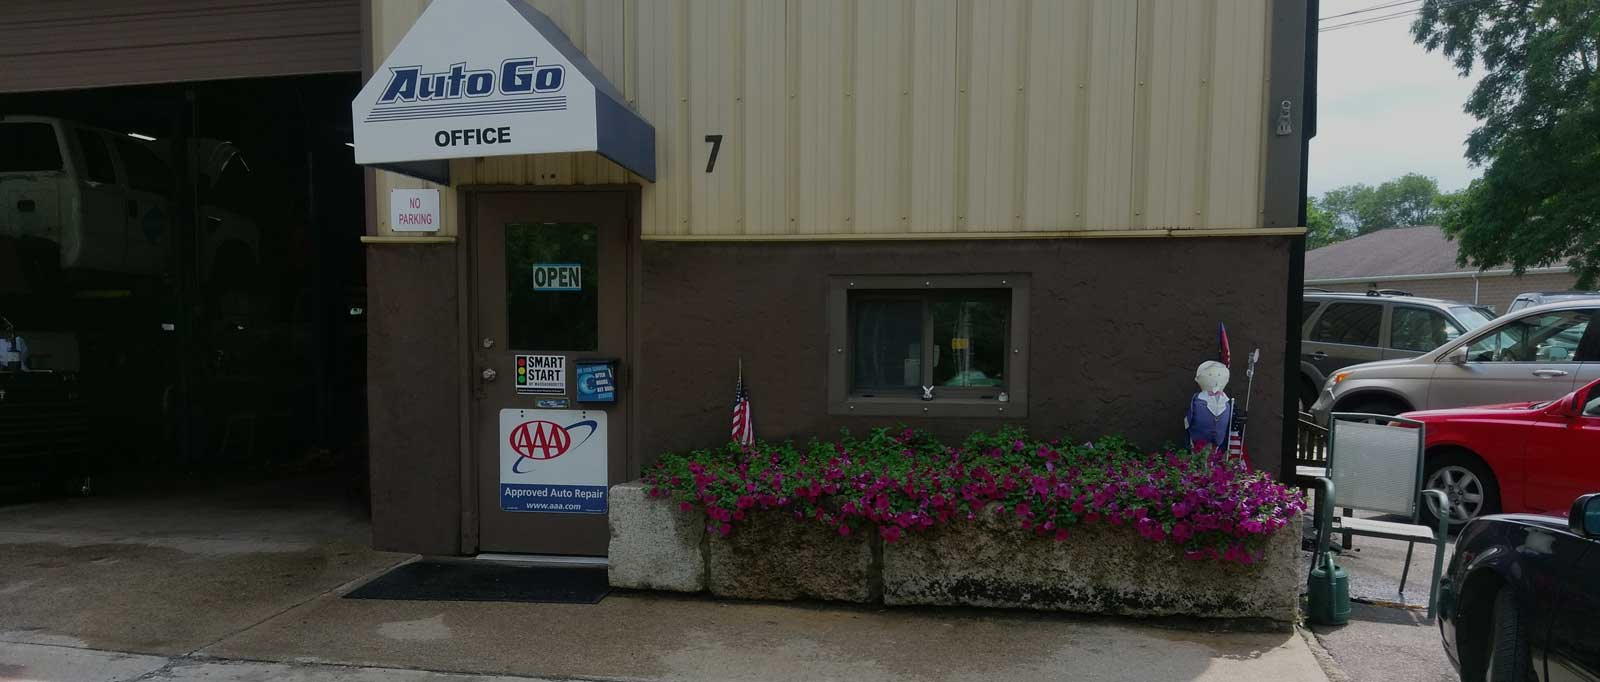 Auto Go - Auto Repair in Milford, MA